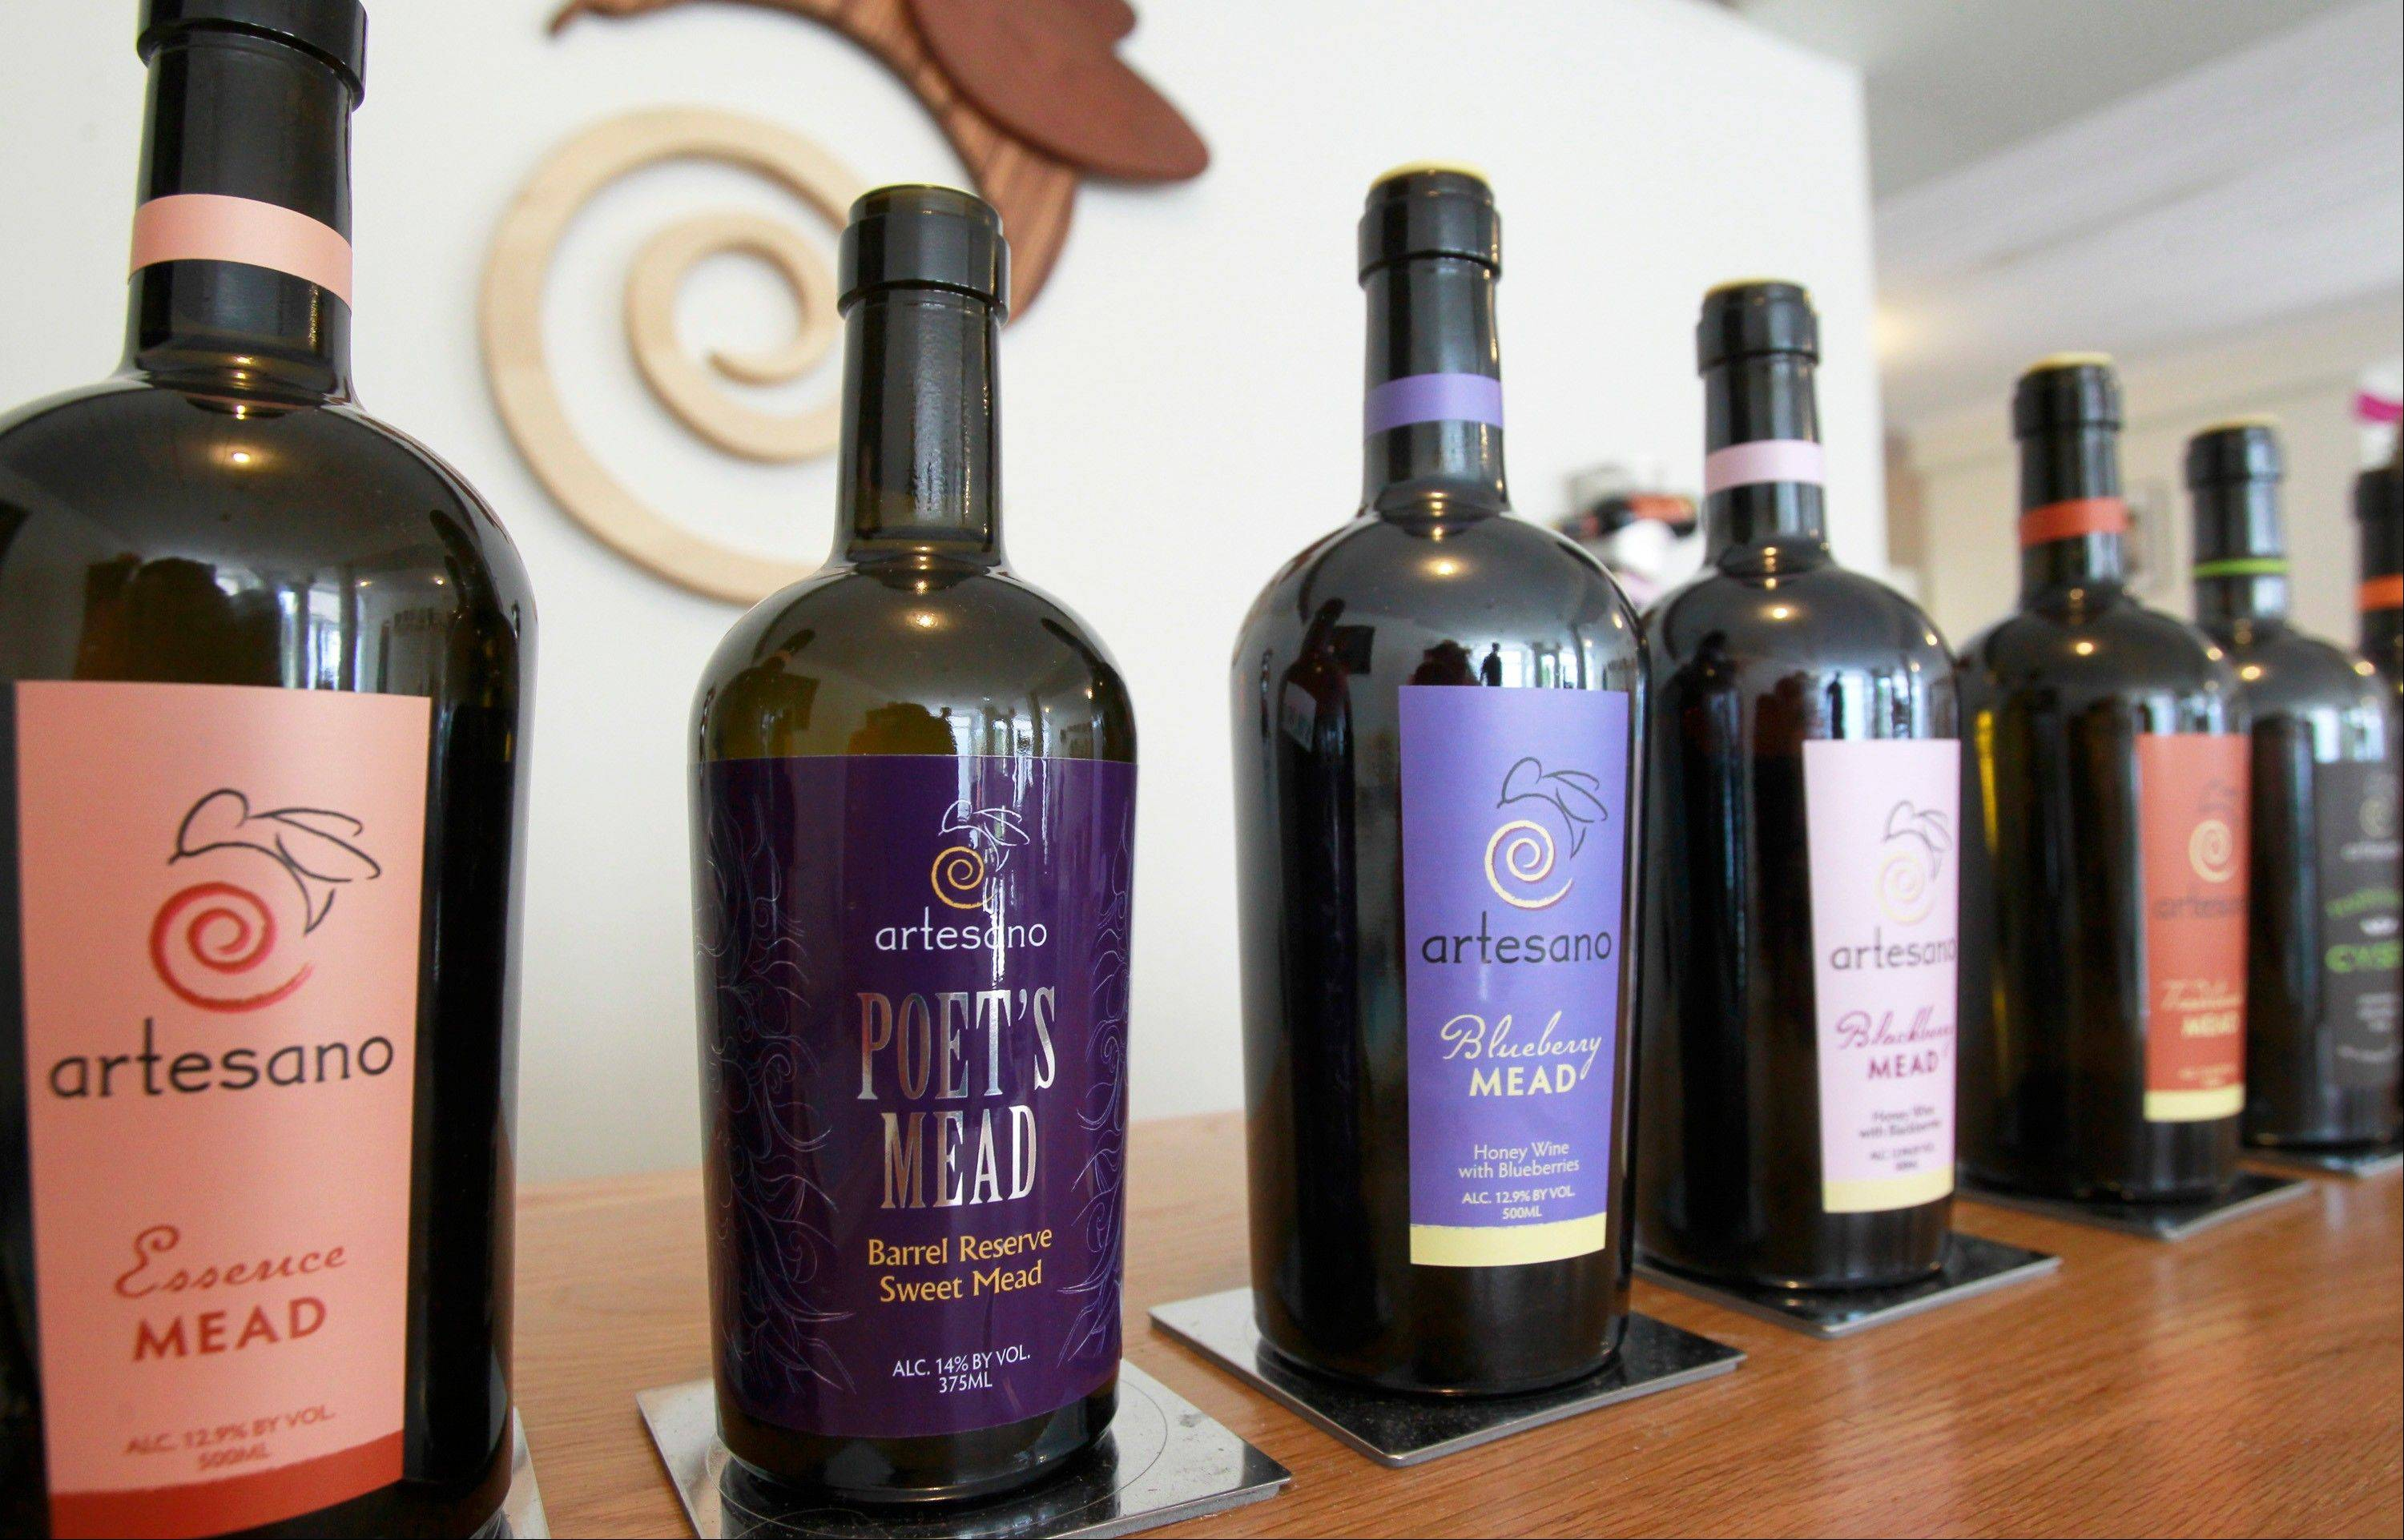 Beekeepers, vintners rediscover nectar of the gods